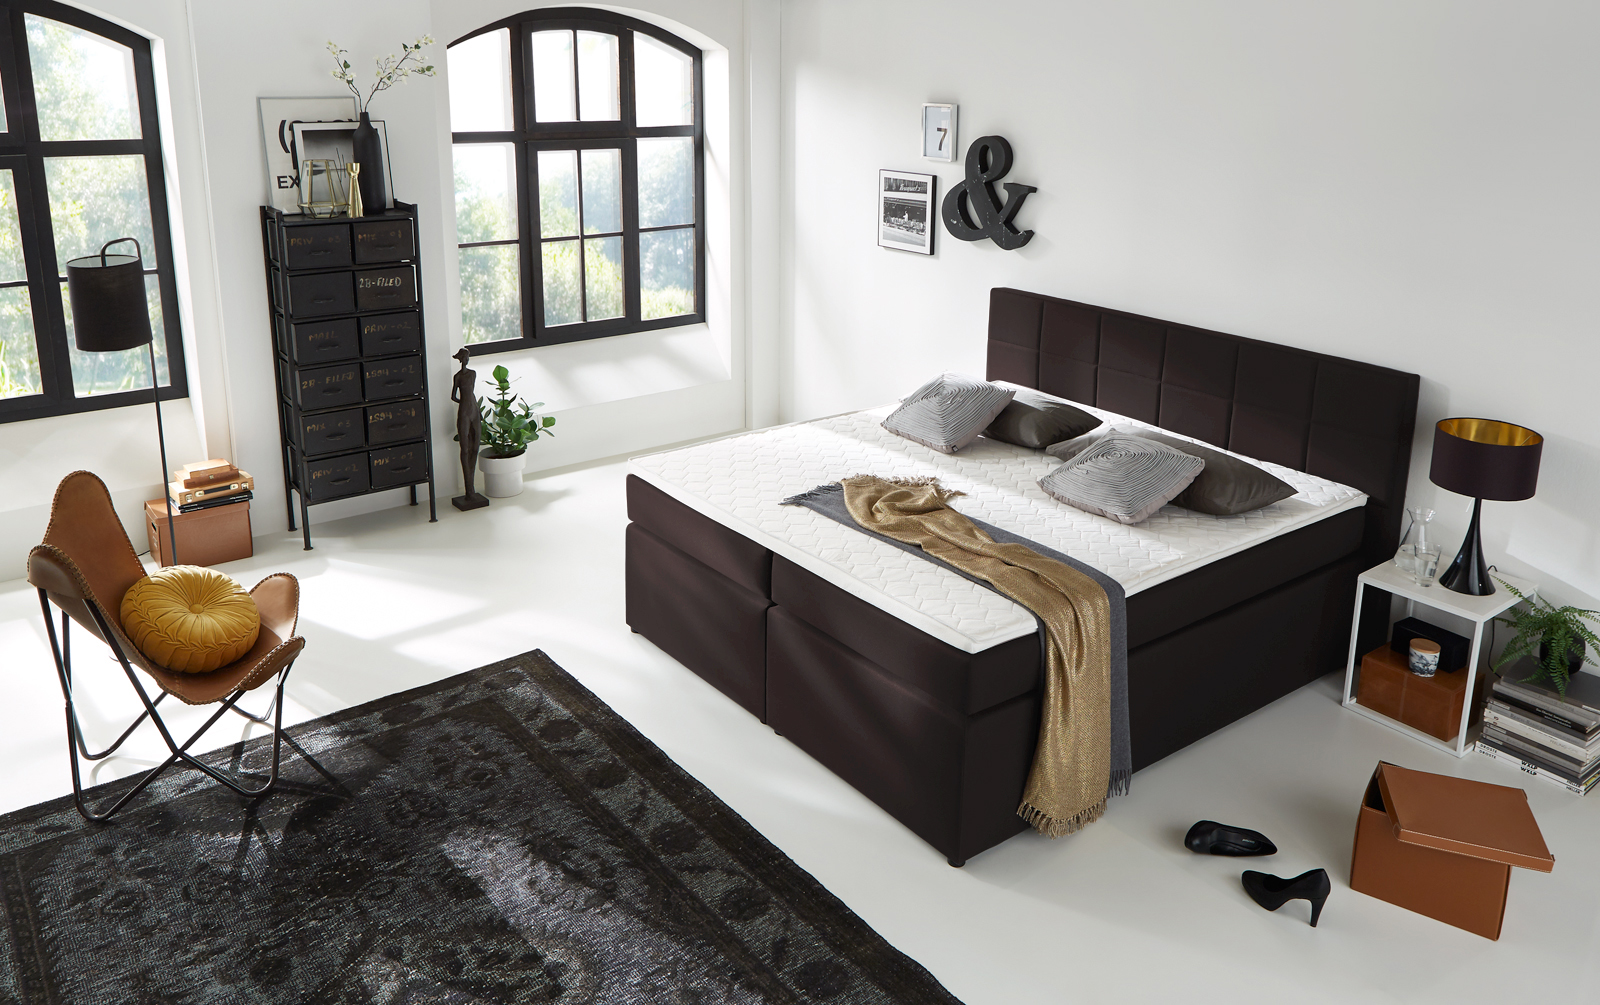 sam boxspringbett h3 stoffbezug 180x200 cm hotelbett braun sassari. Black Bedroom Furniture Sets. Home Design Ideas